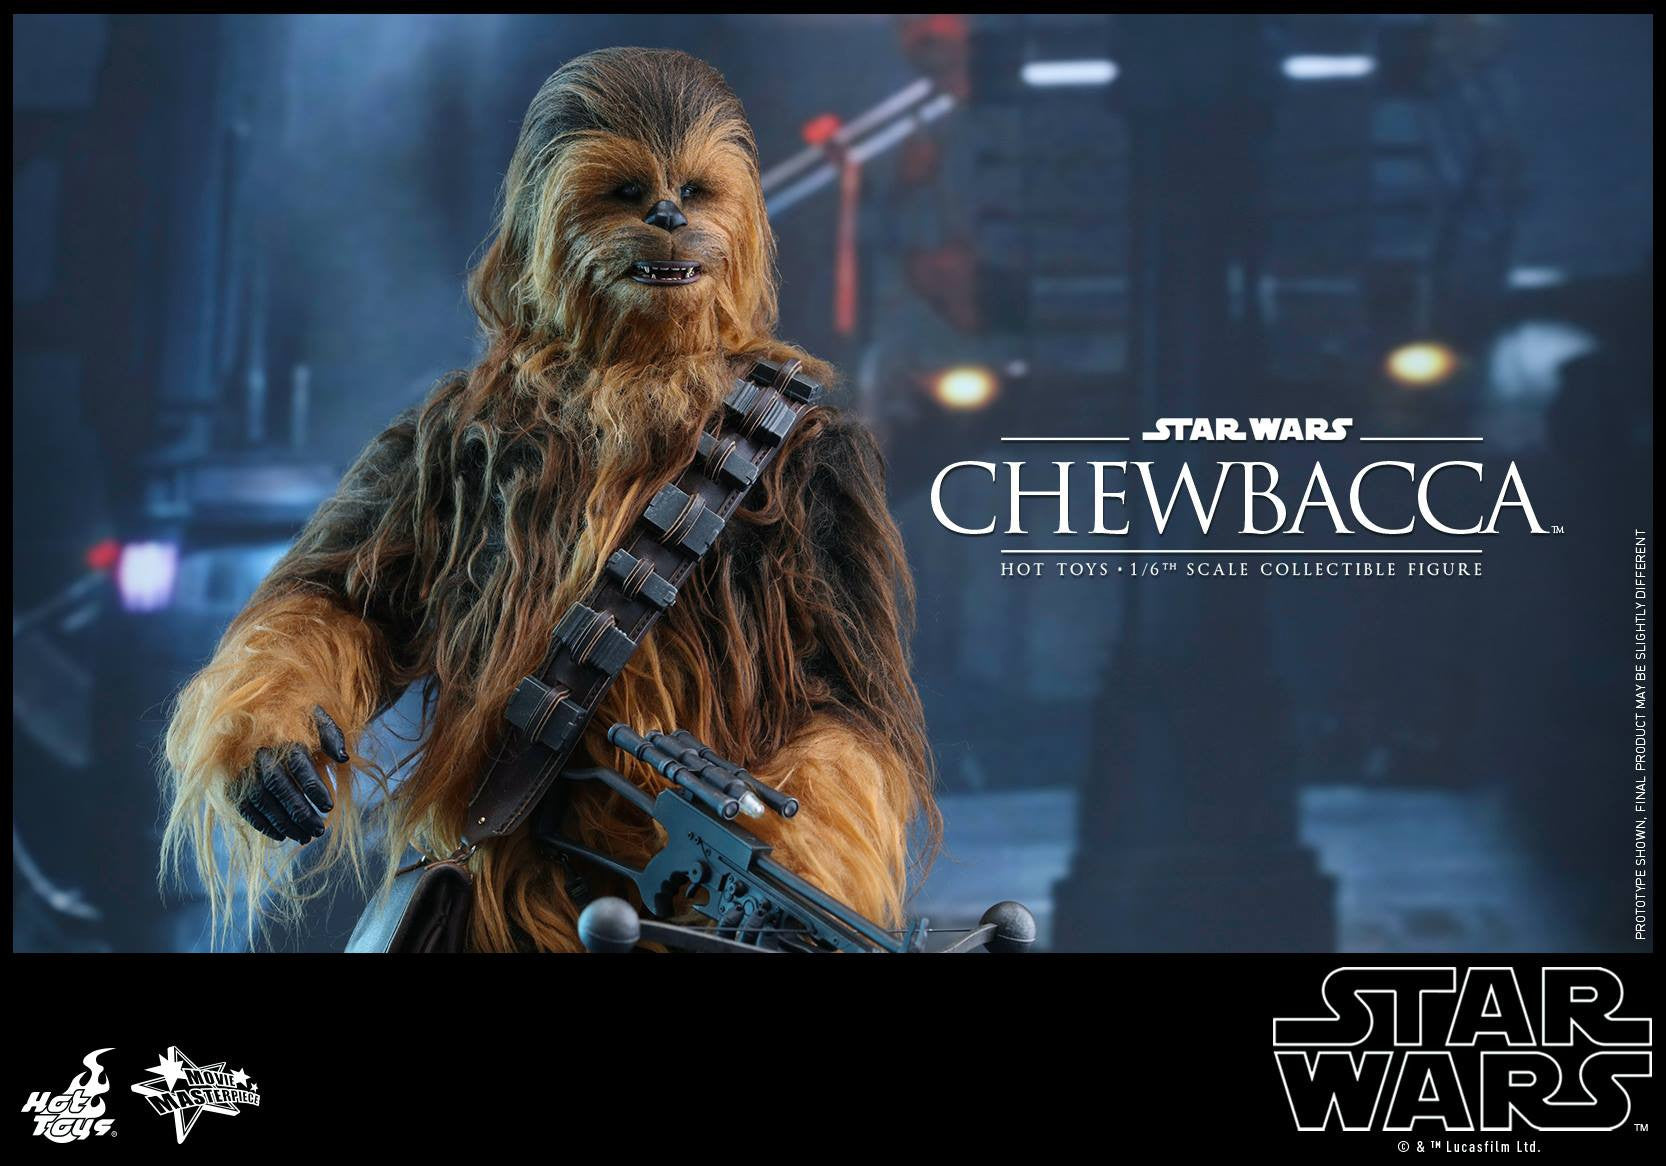 Hot Toys - MMS375 - Star Wars: The Force Awakens - Chewbacca - Marvelous Toys - 11